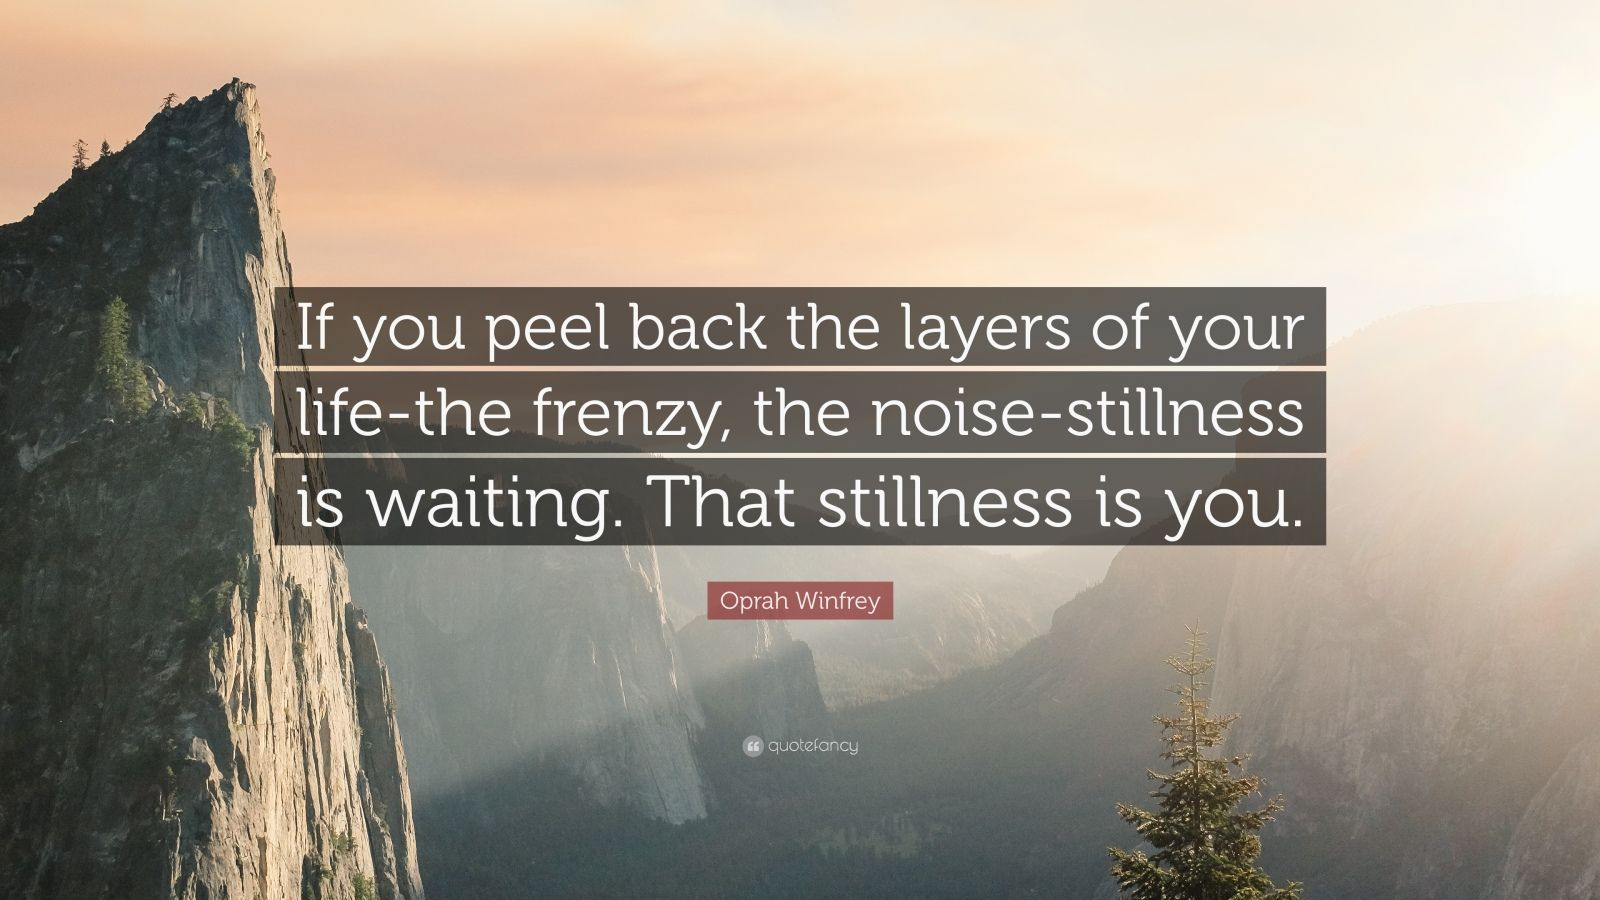 """Oprah Winfrey Quote: """"If you peel back the layers of your life-the frenzy, the noise-stillness is waiting. That stillness is you."""""""